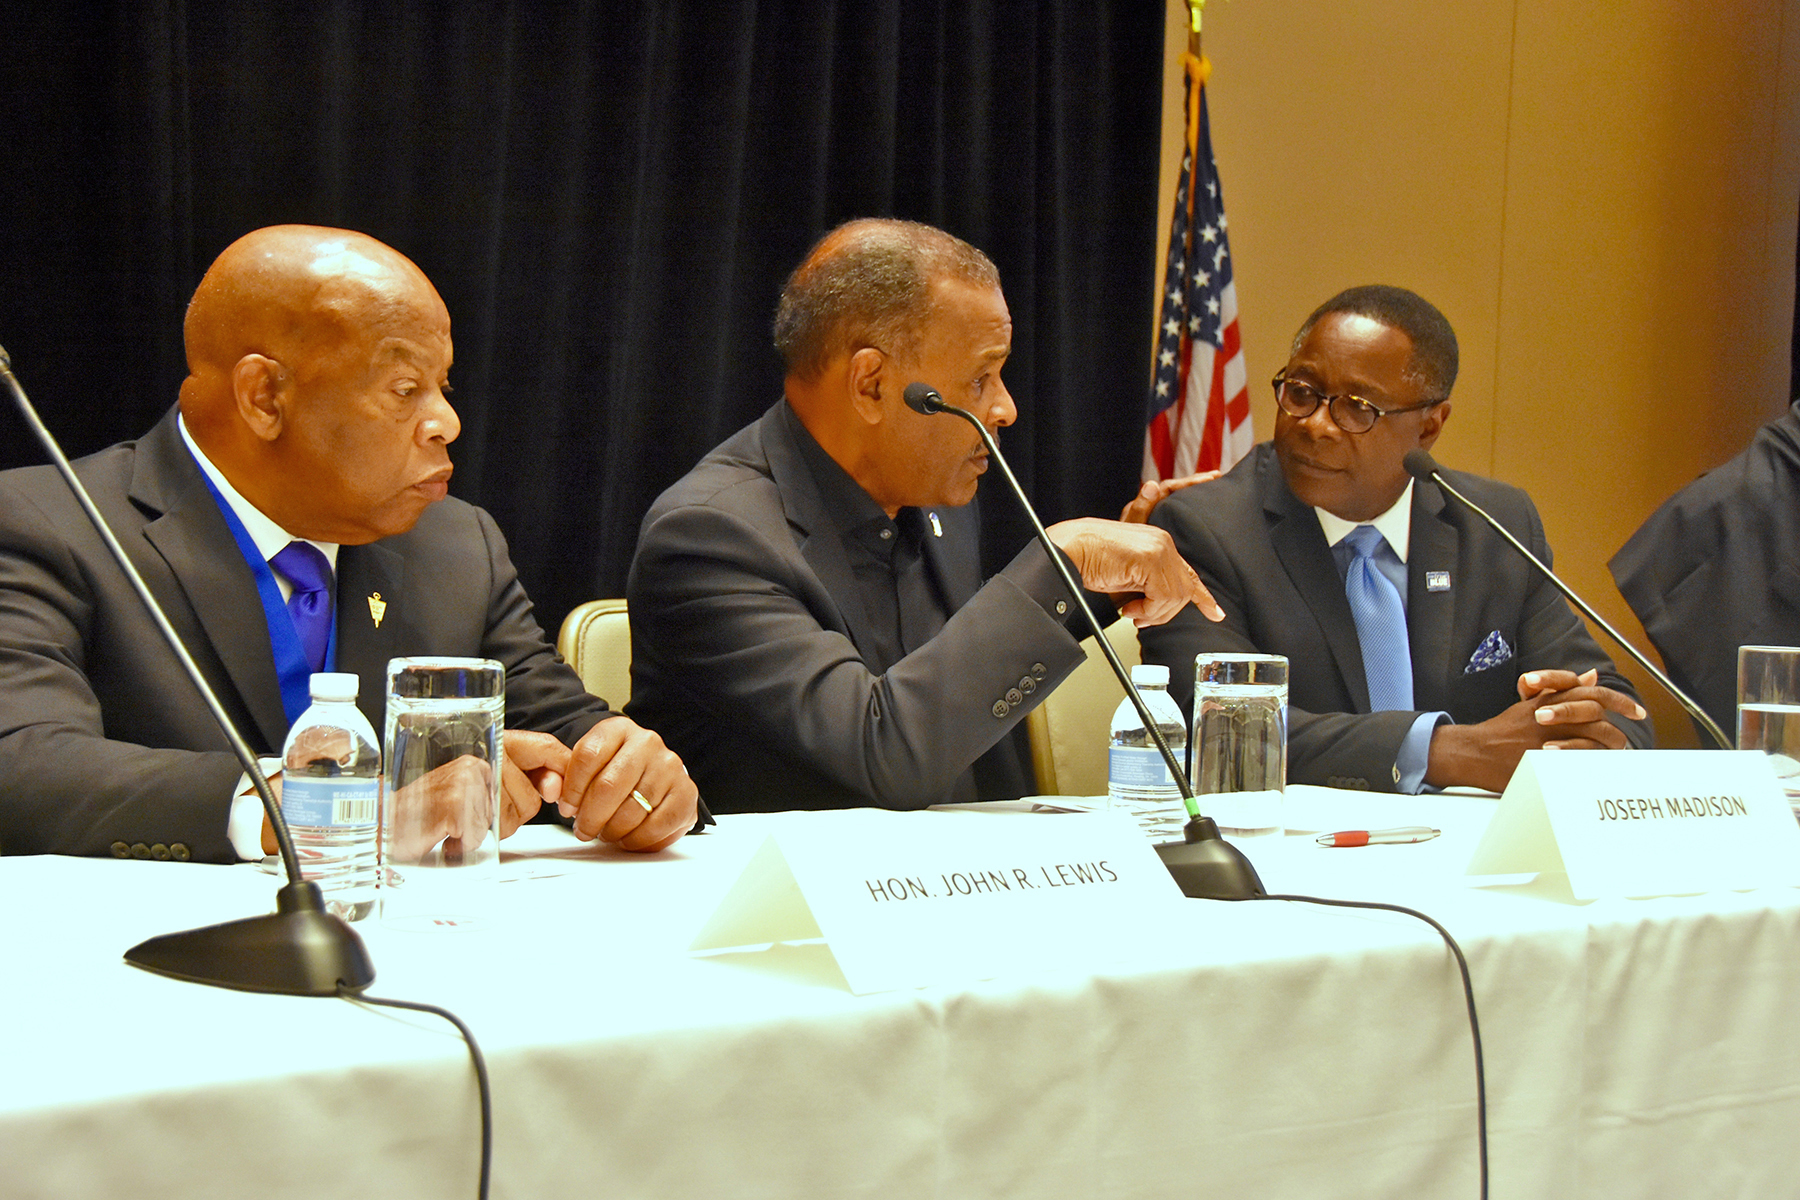 MTSU president joins Rep. John Lewis in D.C. for panel discussion on leadership, mentoring